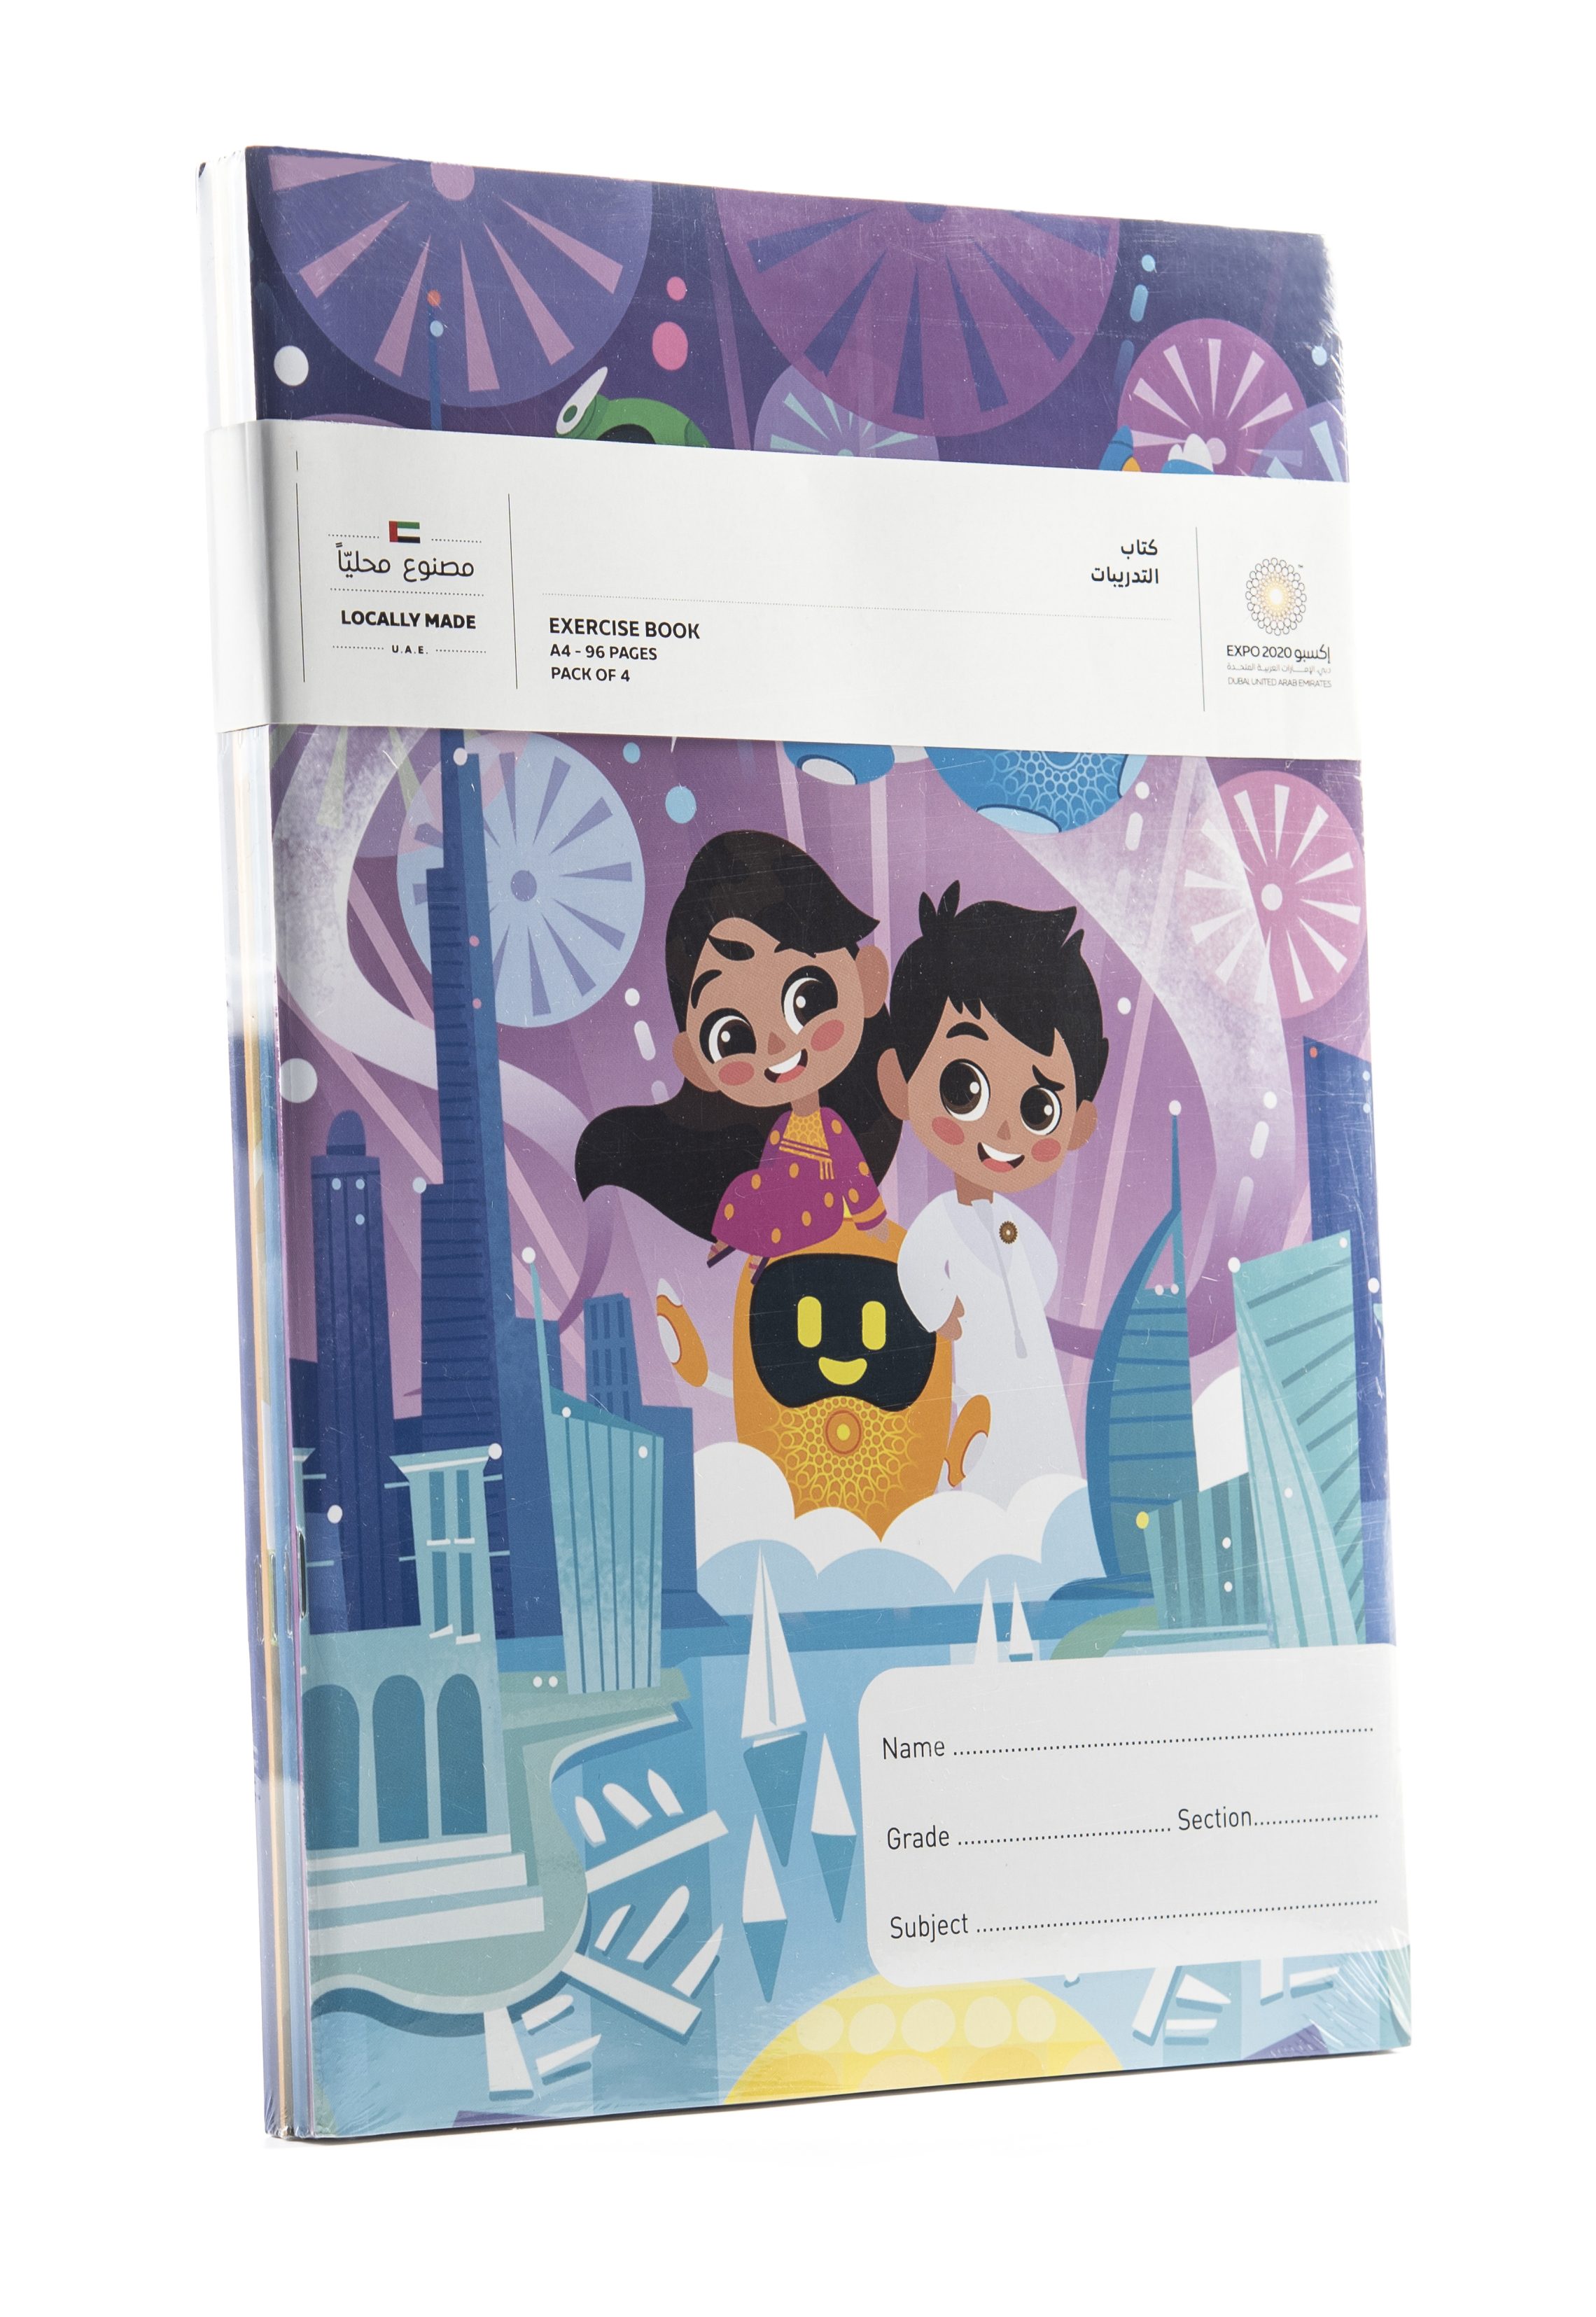 Expo 2020 Dubai Mascots On a Mission A4 Exercise Books Pack of 4 - 96 Pages